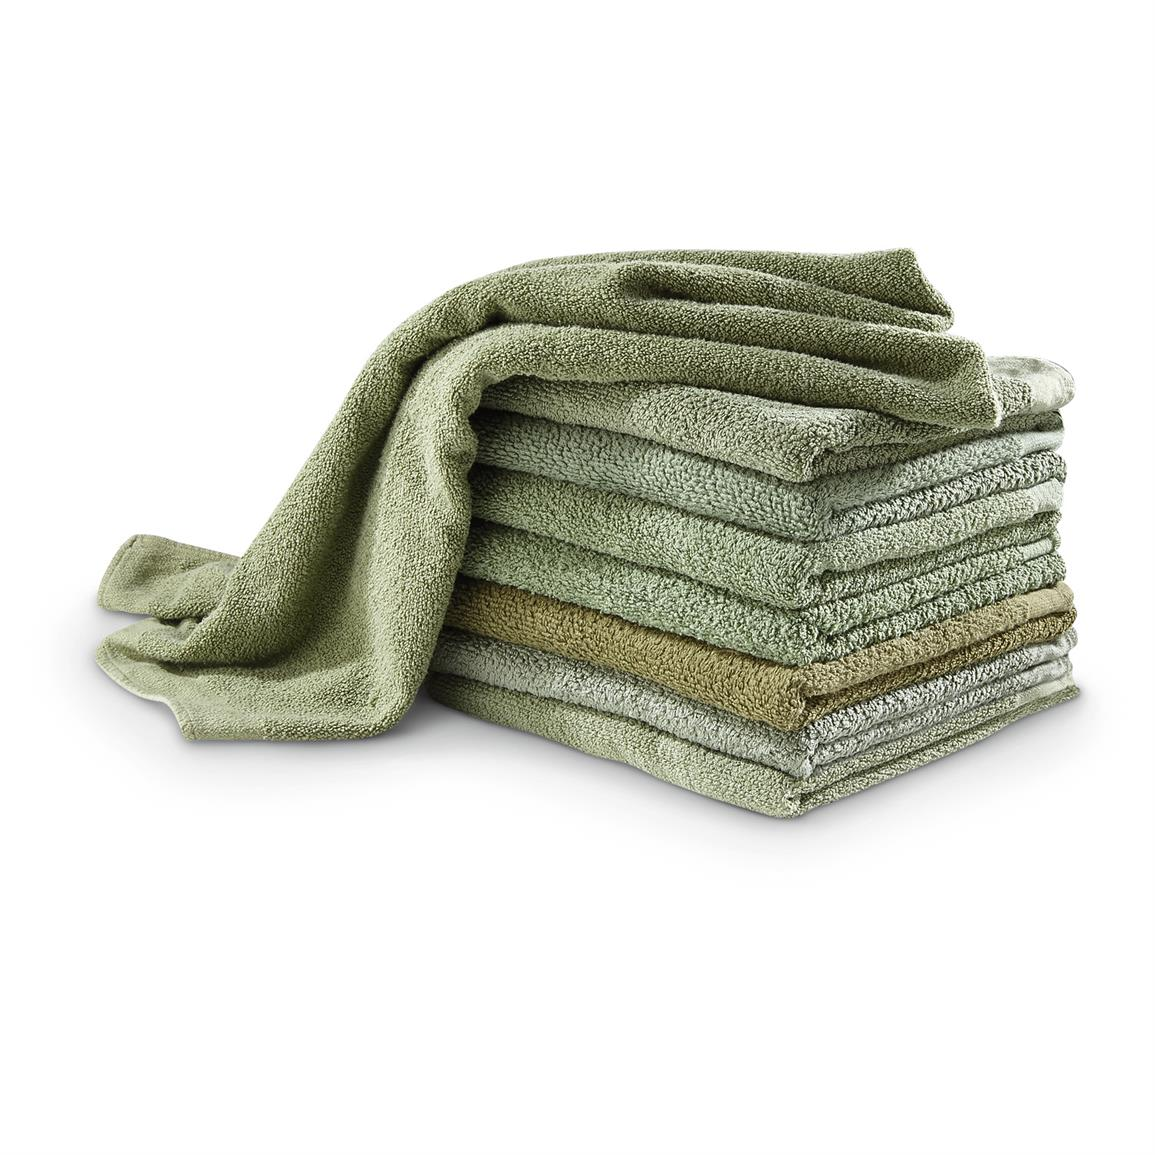 Used Military Surplus Towels, German, Cotton, 8-Pk.